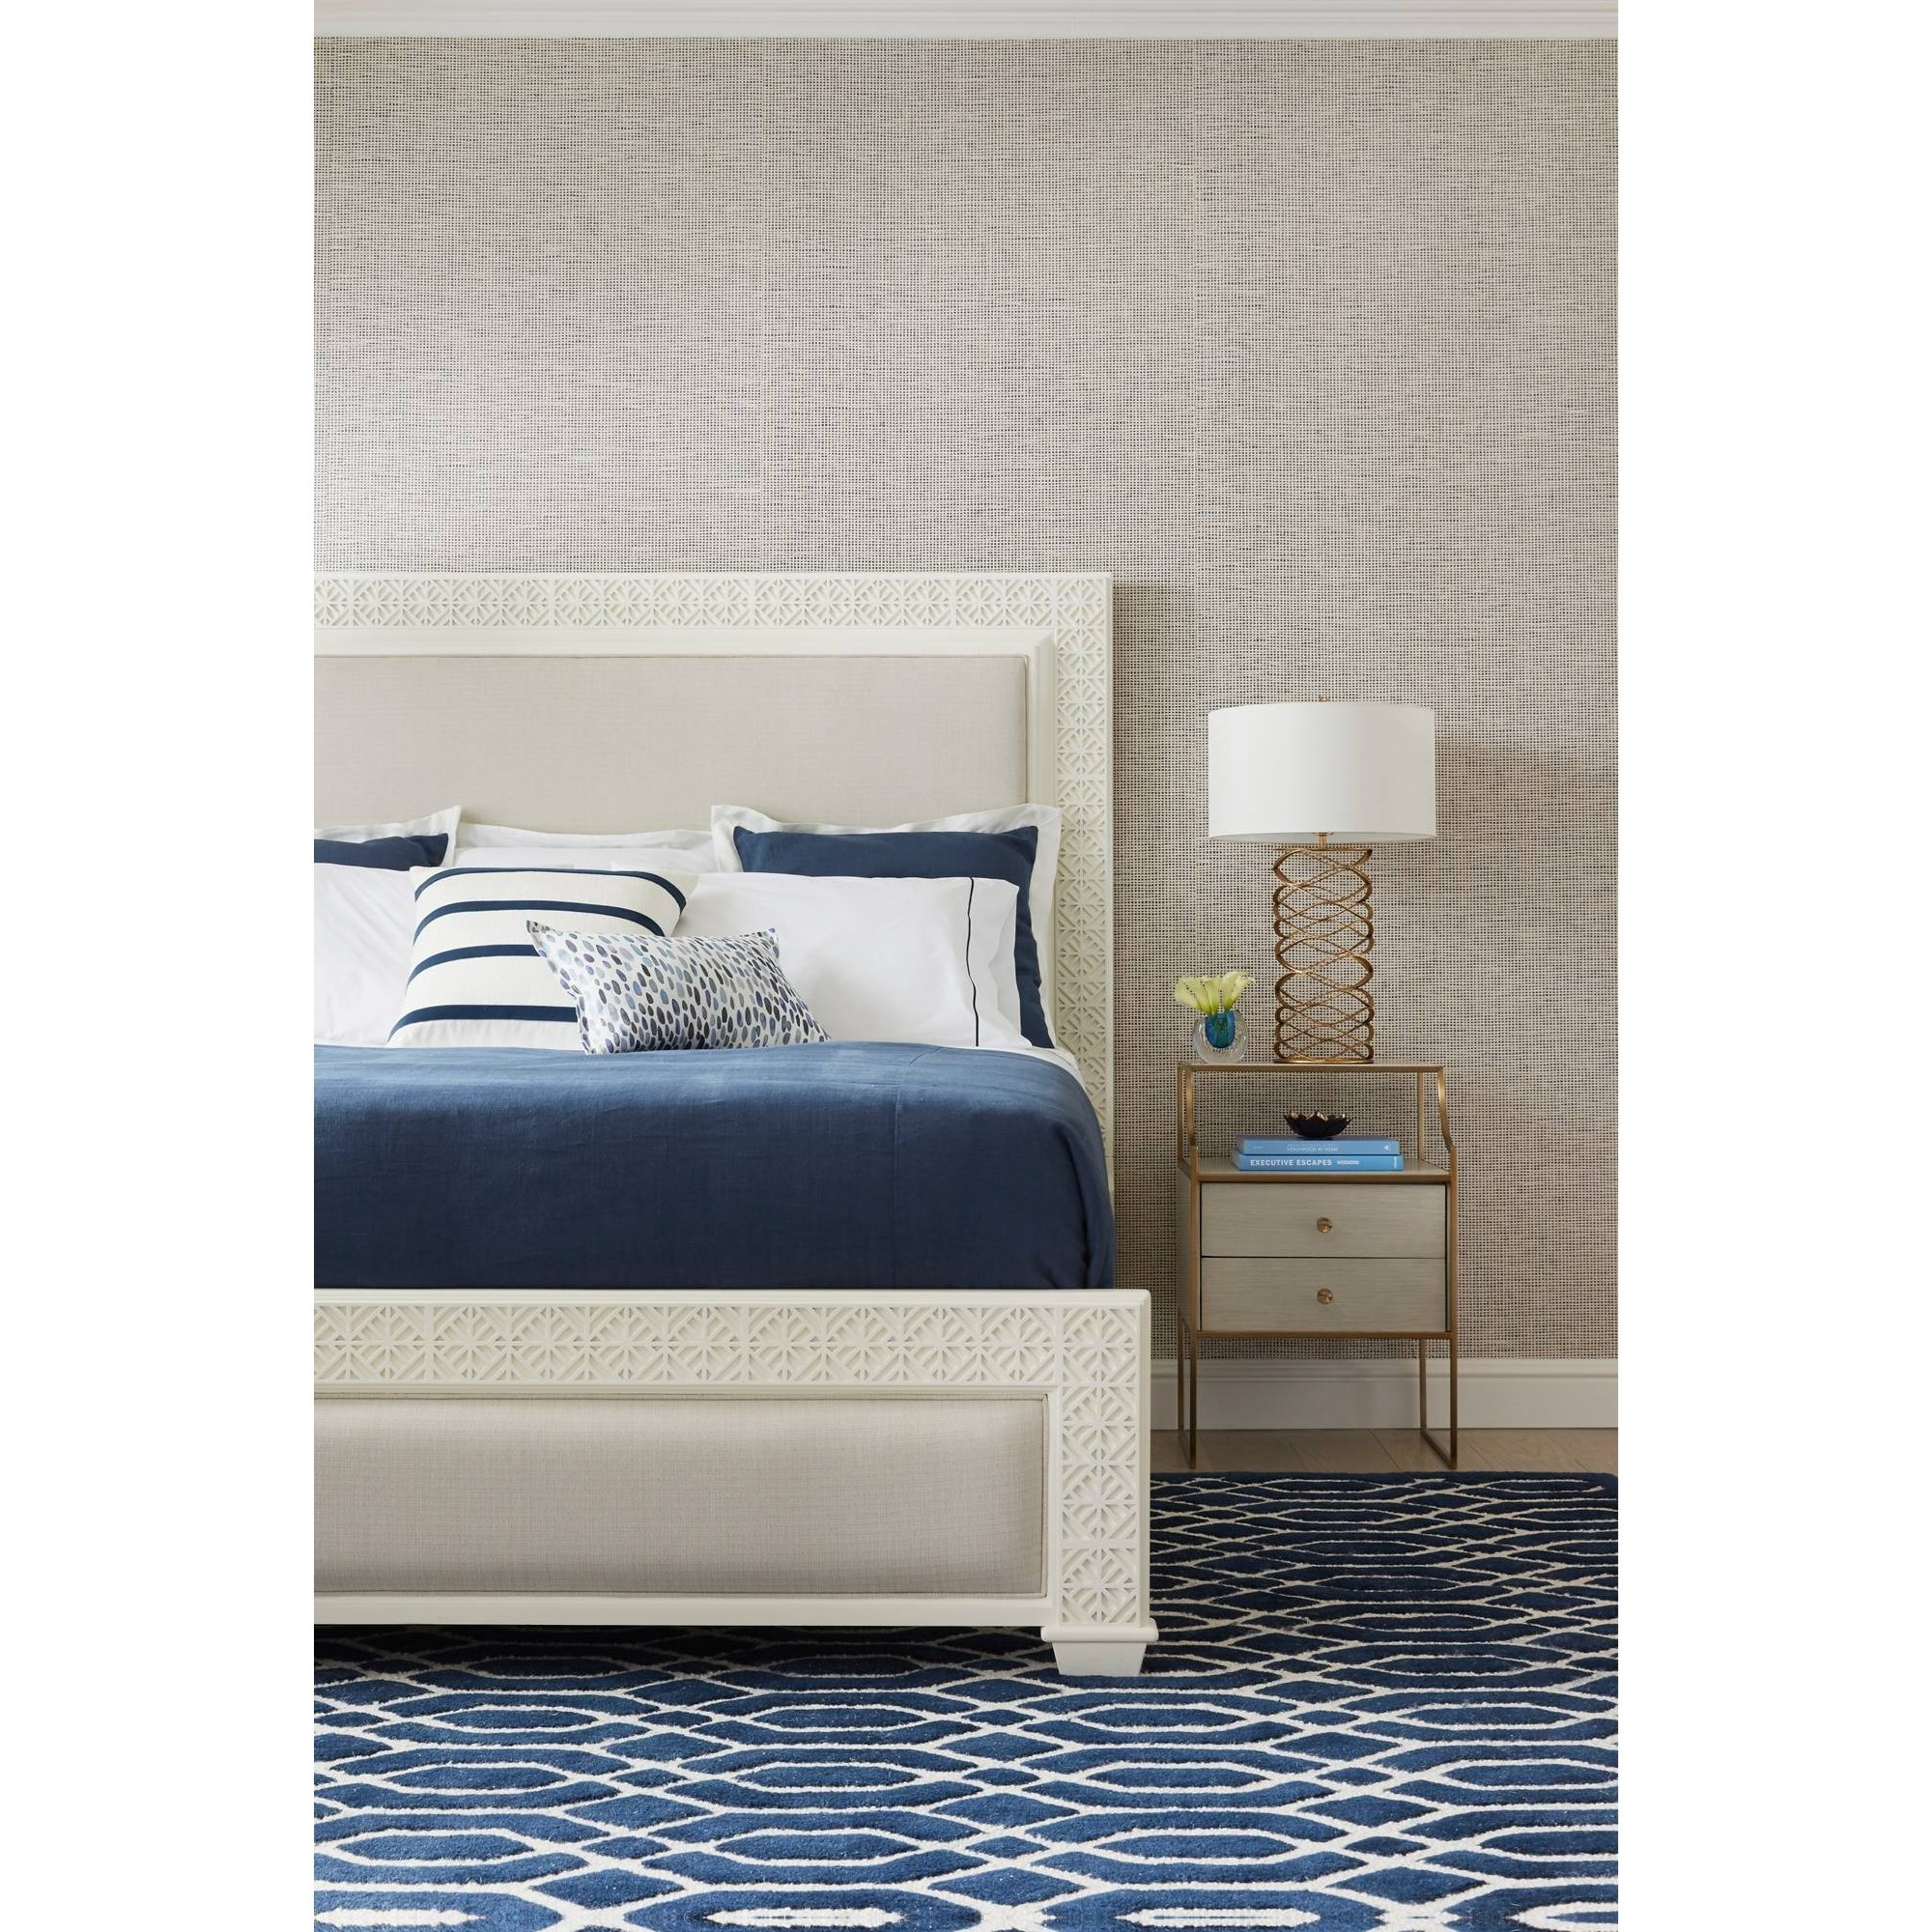 Stanley Furniture Coastal Living Oasis King Bedroom Group - Item Number: 527-2 K Bedroom Group 1